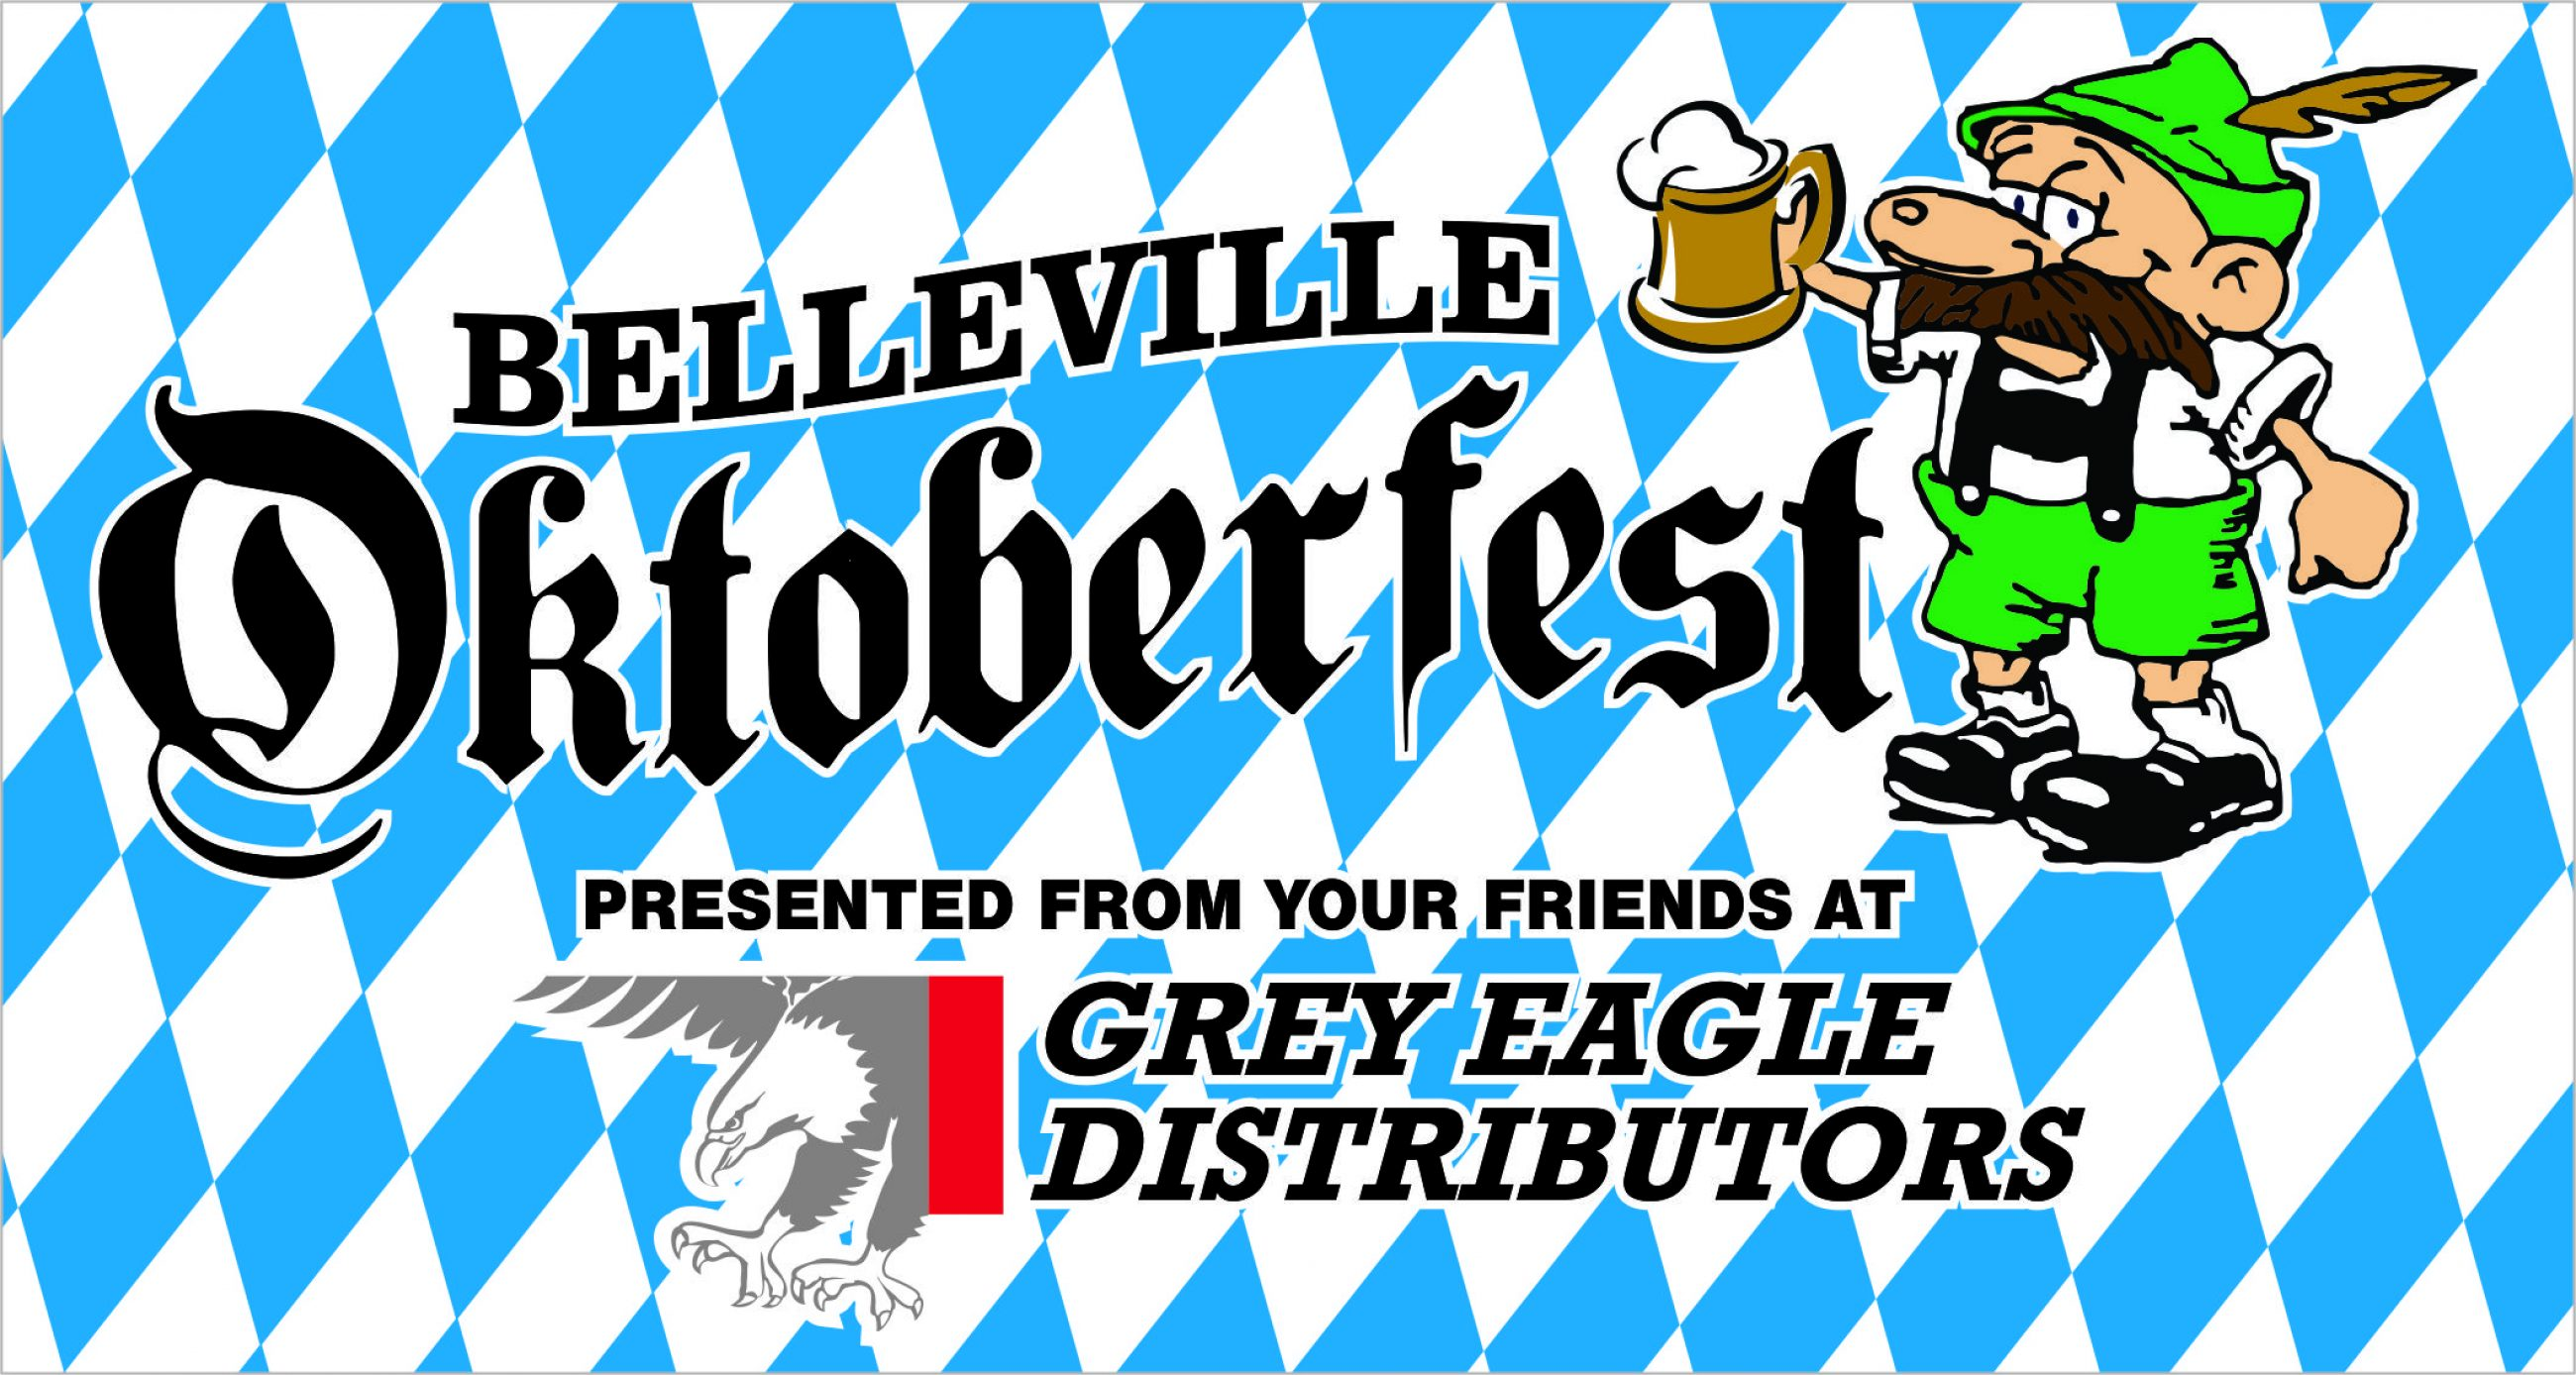 40th Annual Belleville Oktoberfest